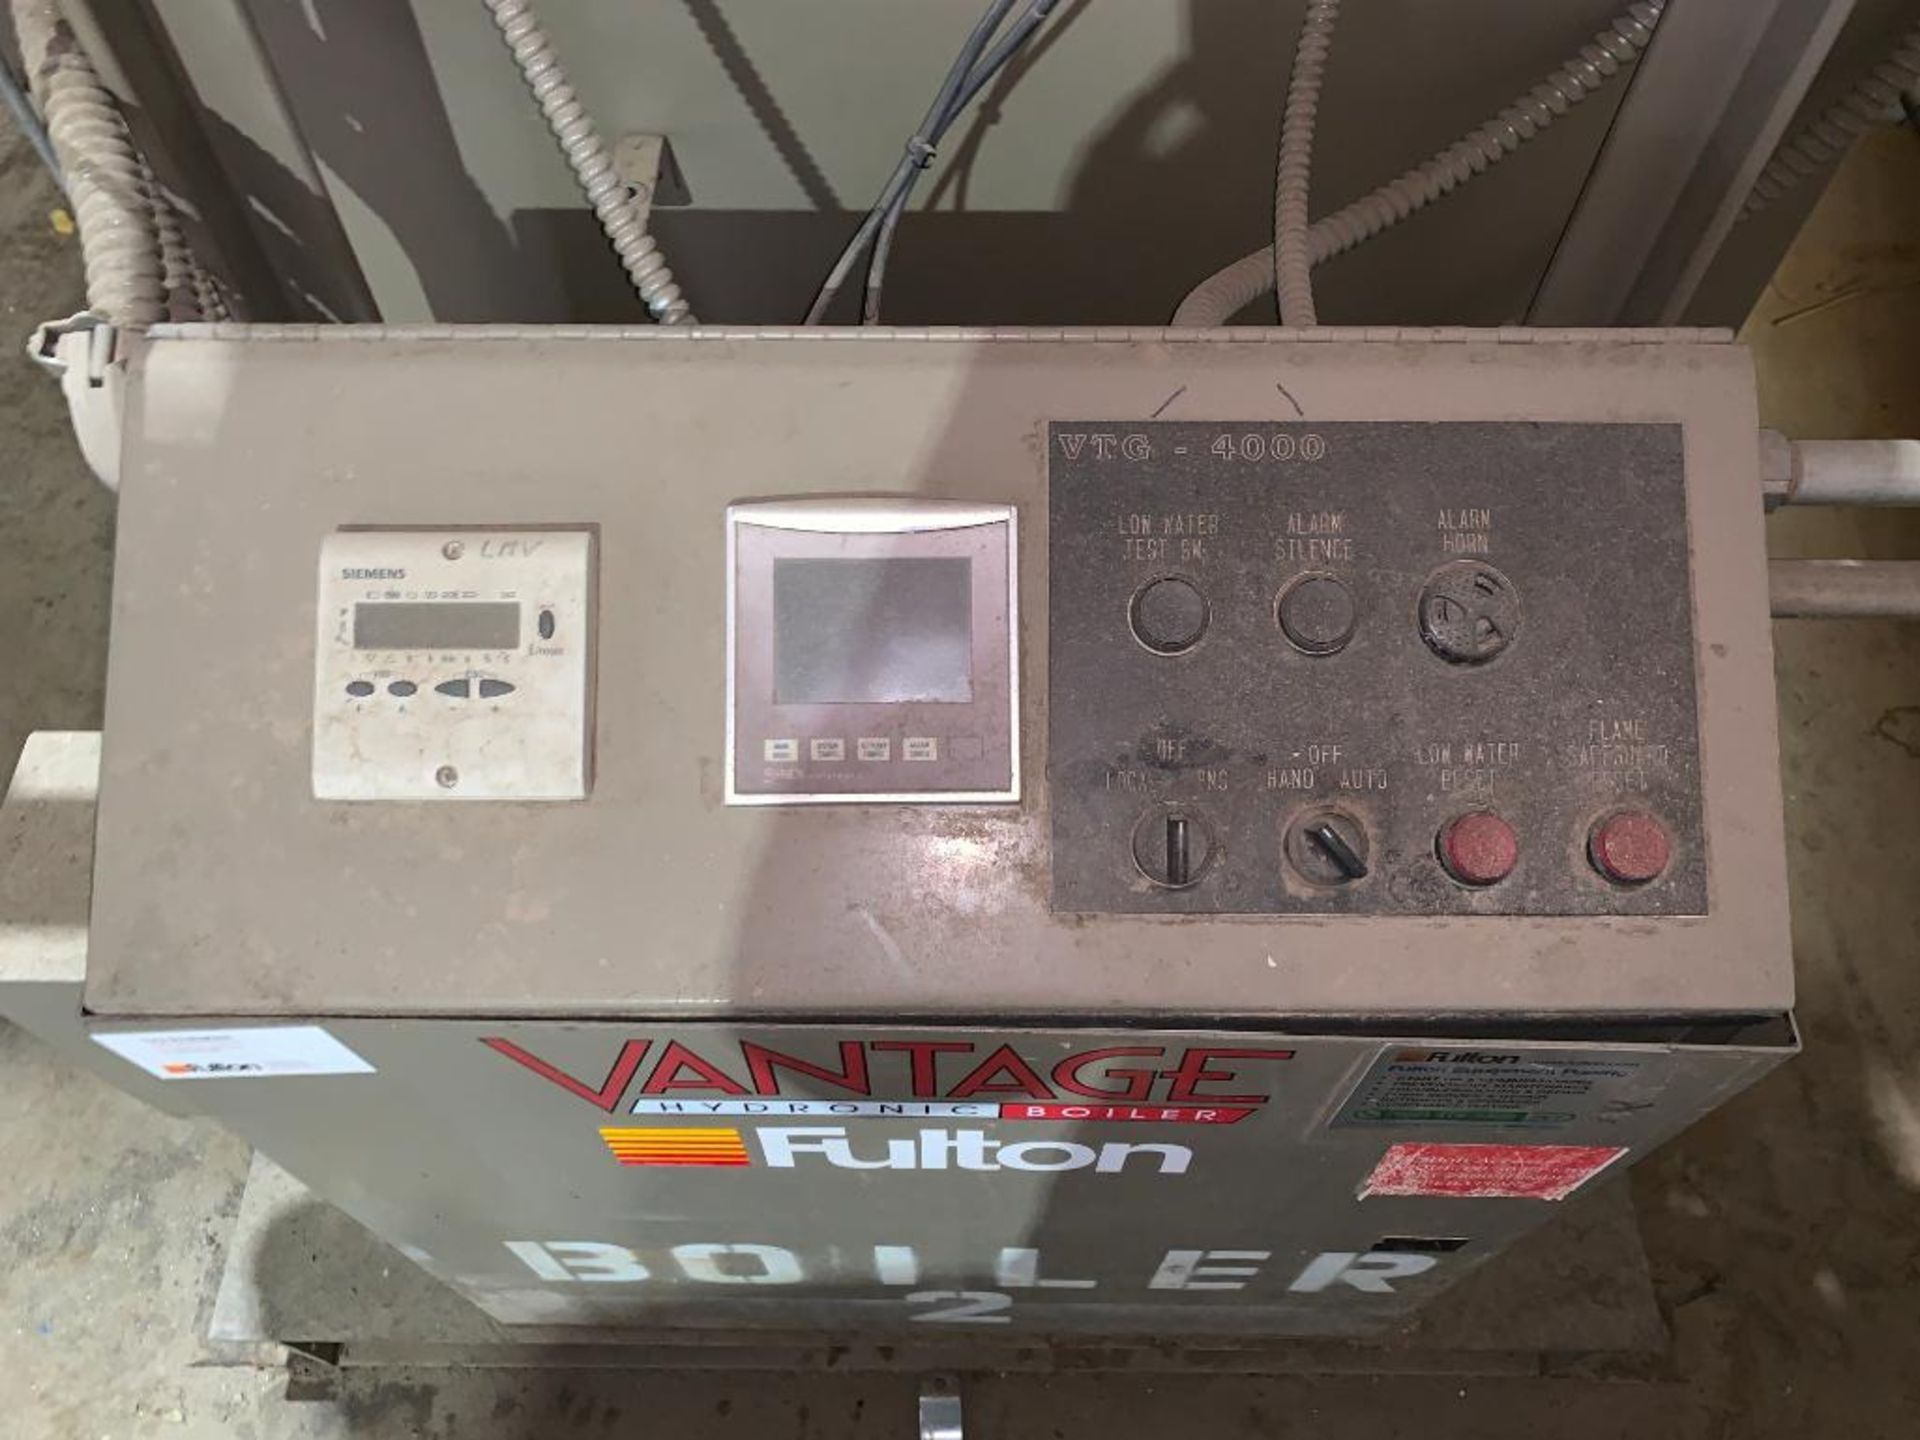 2010 Fulton fuel fired hot water boiler - Image 5 of 15